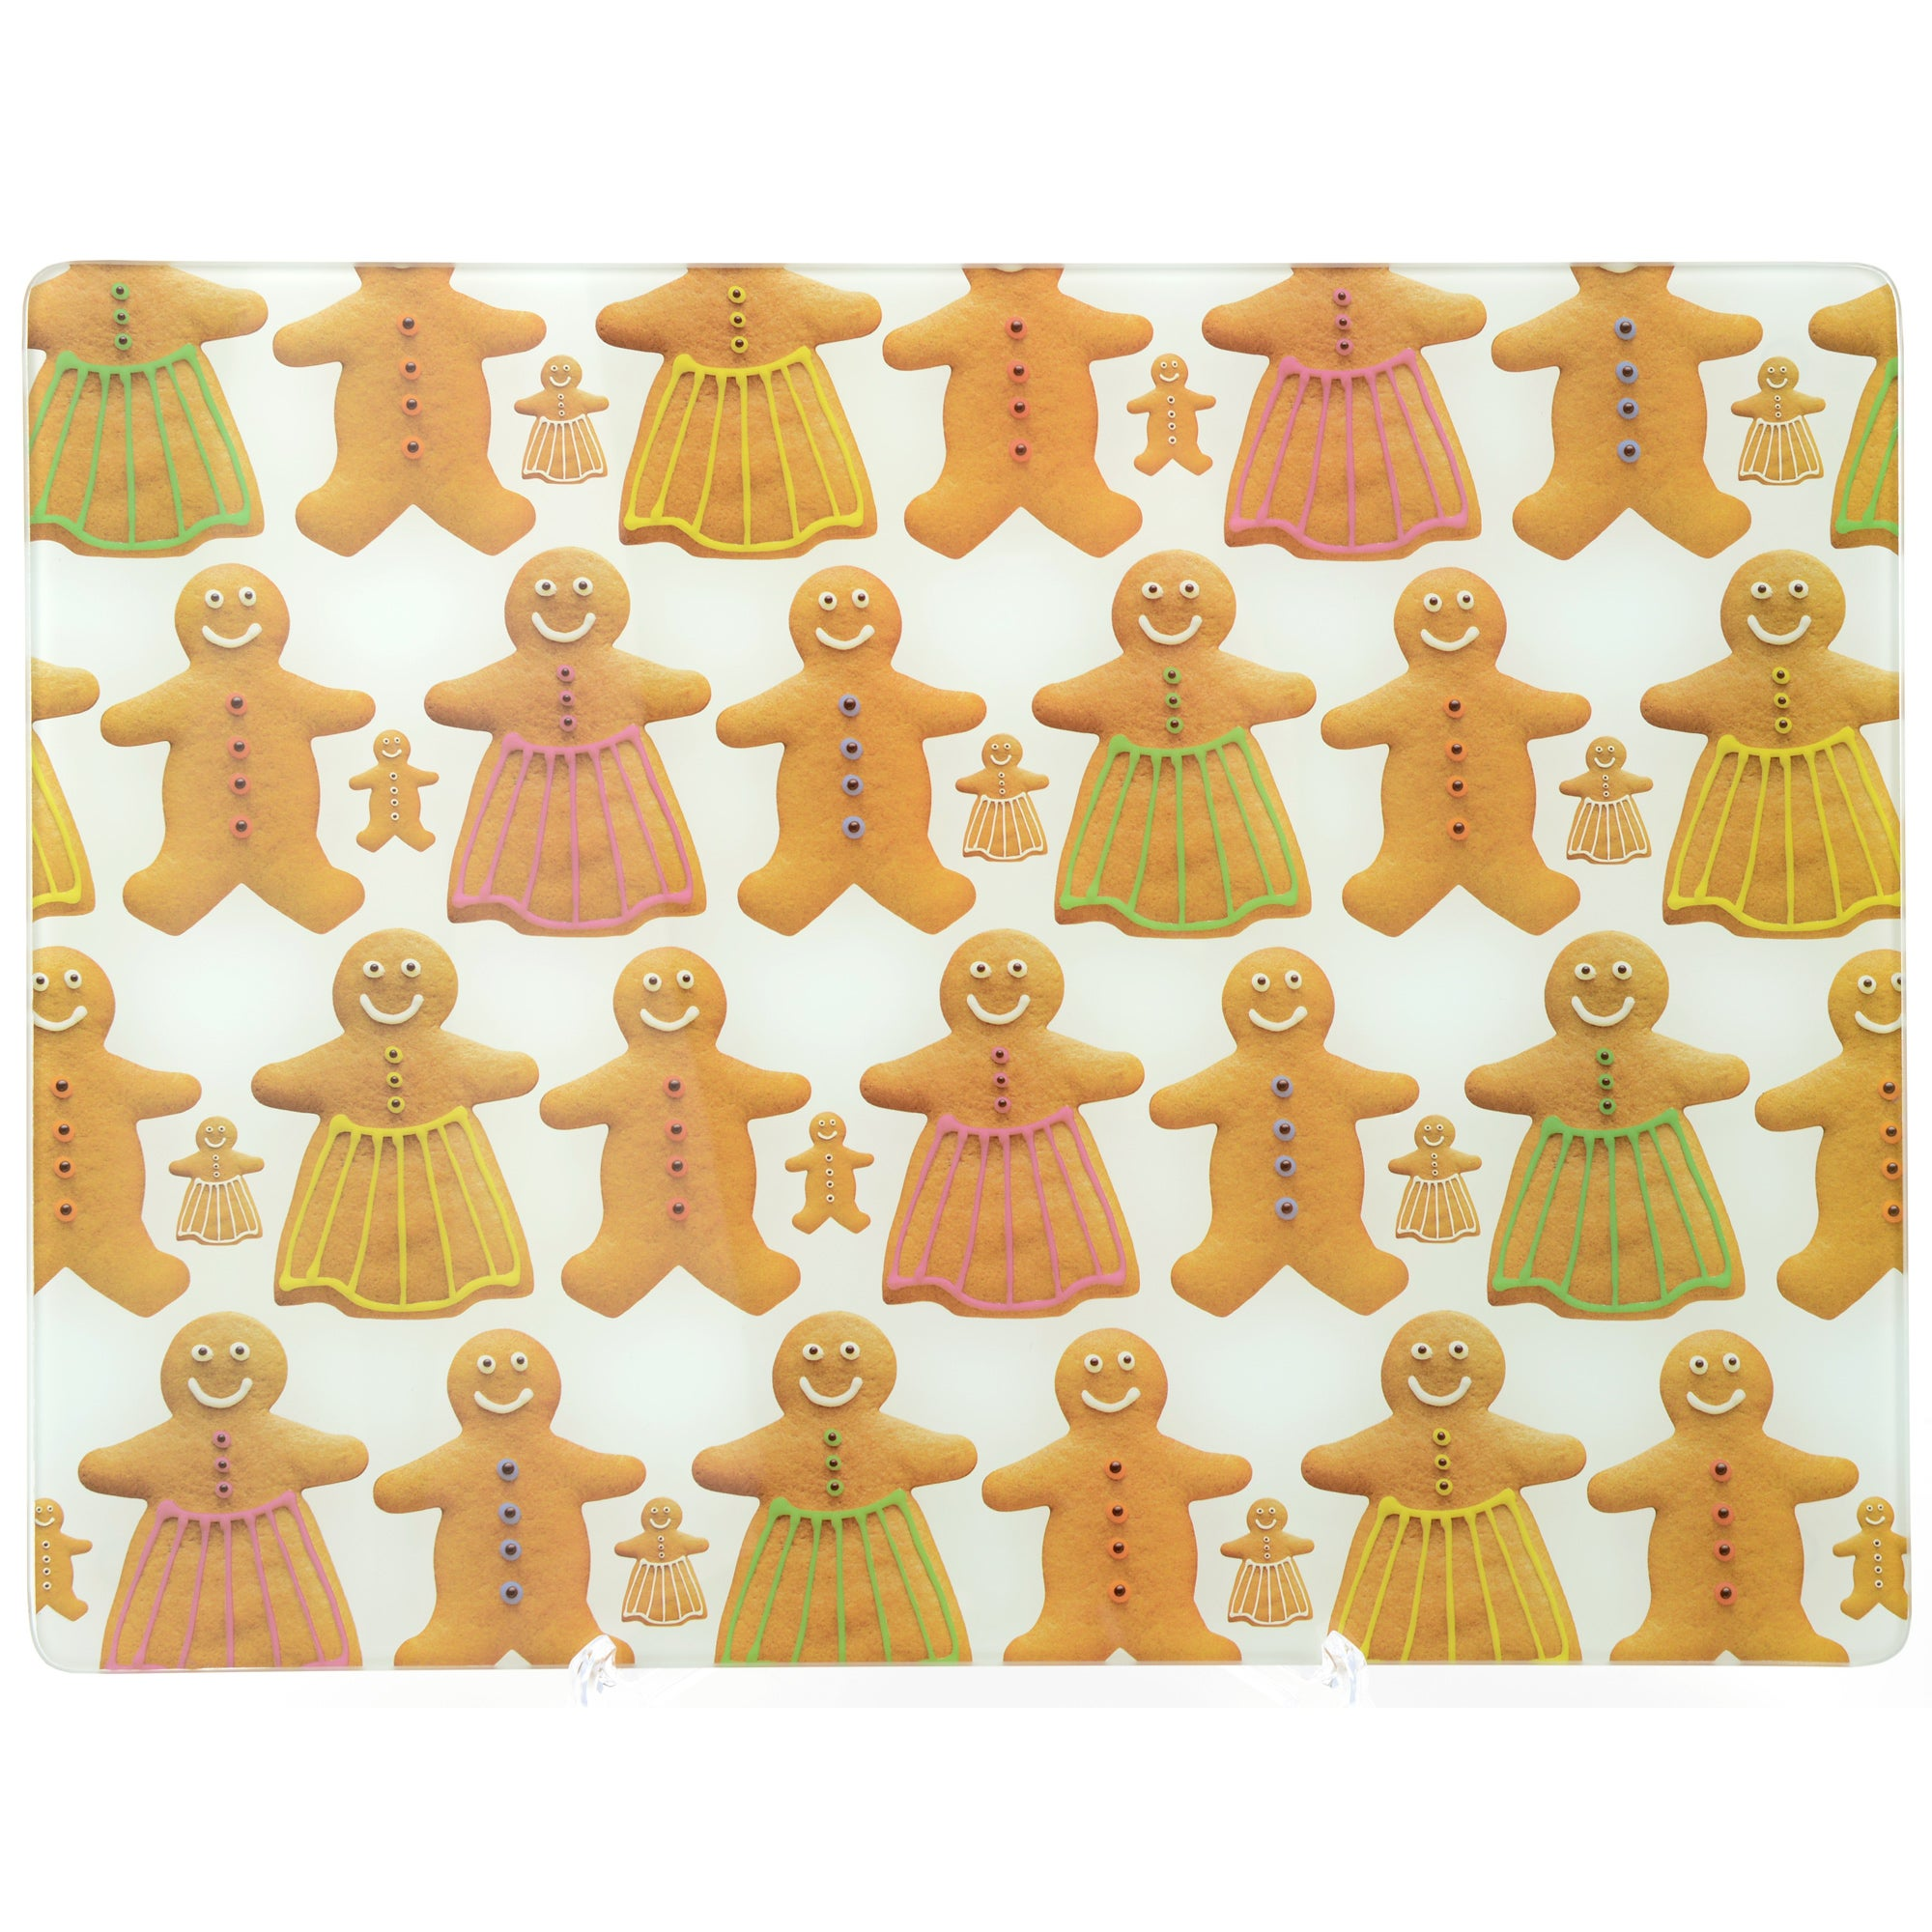 Gingerbread Work Surface Protector